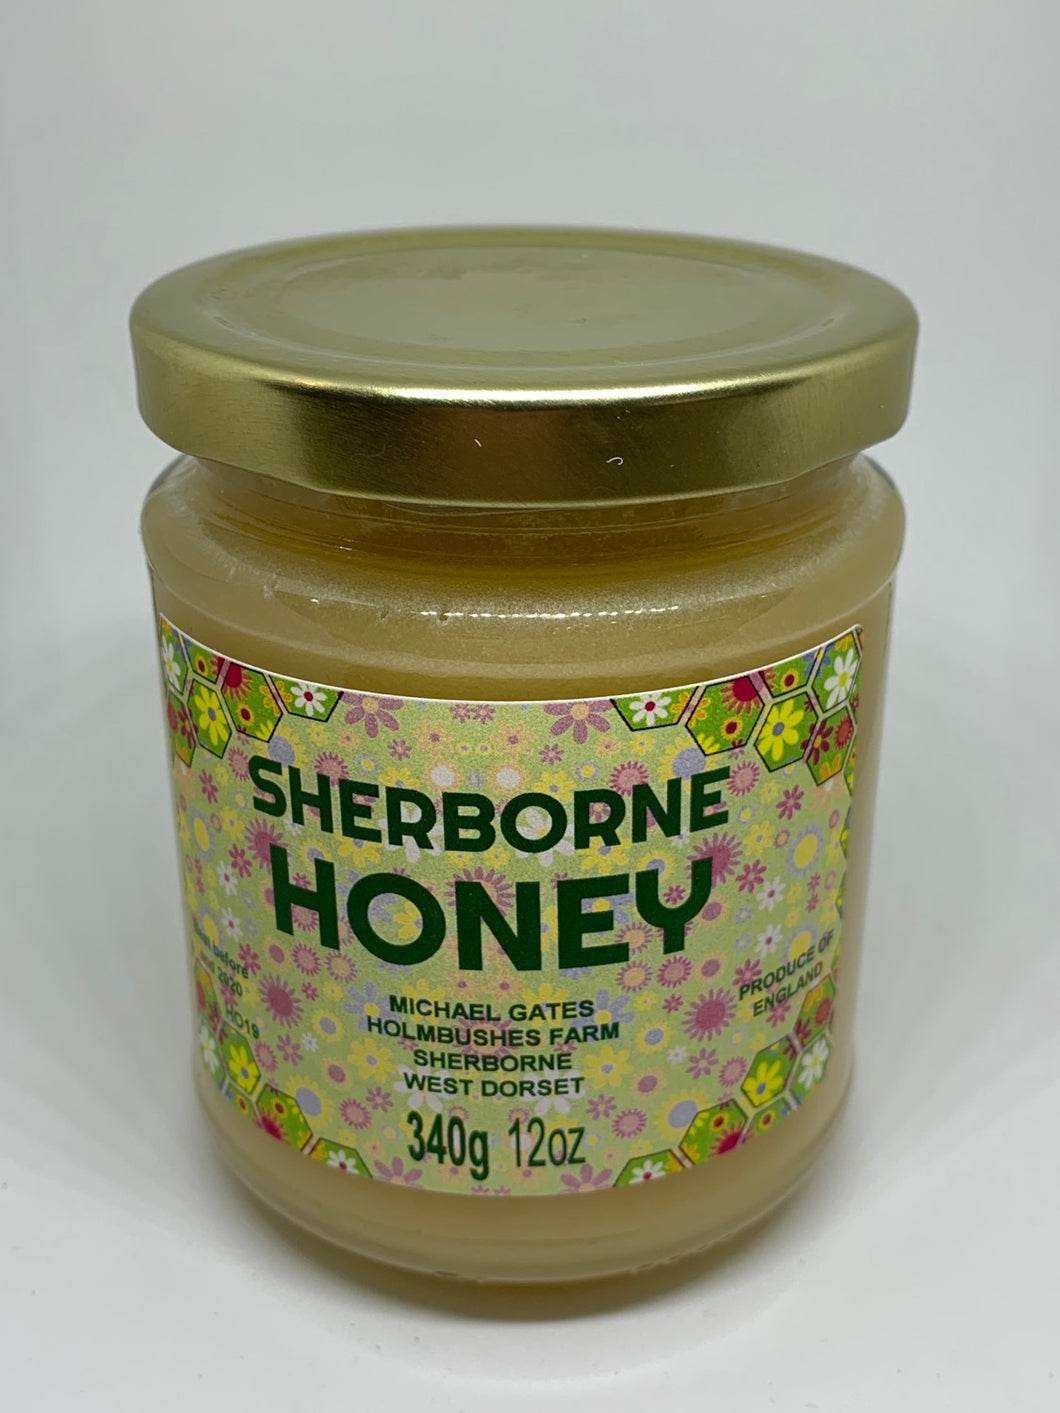 Sherborne Honey 340g